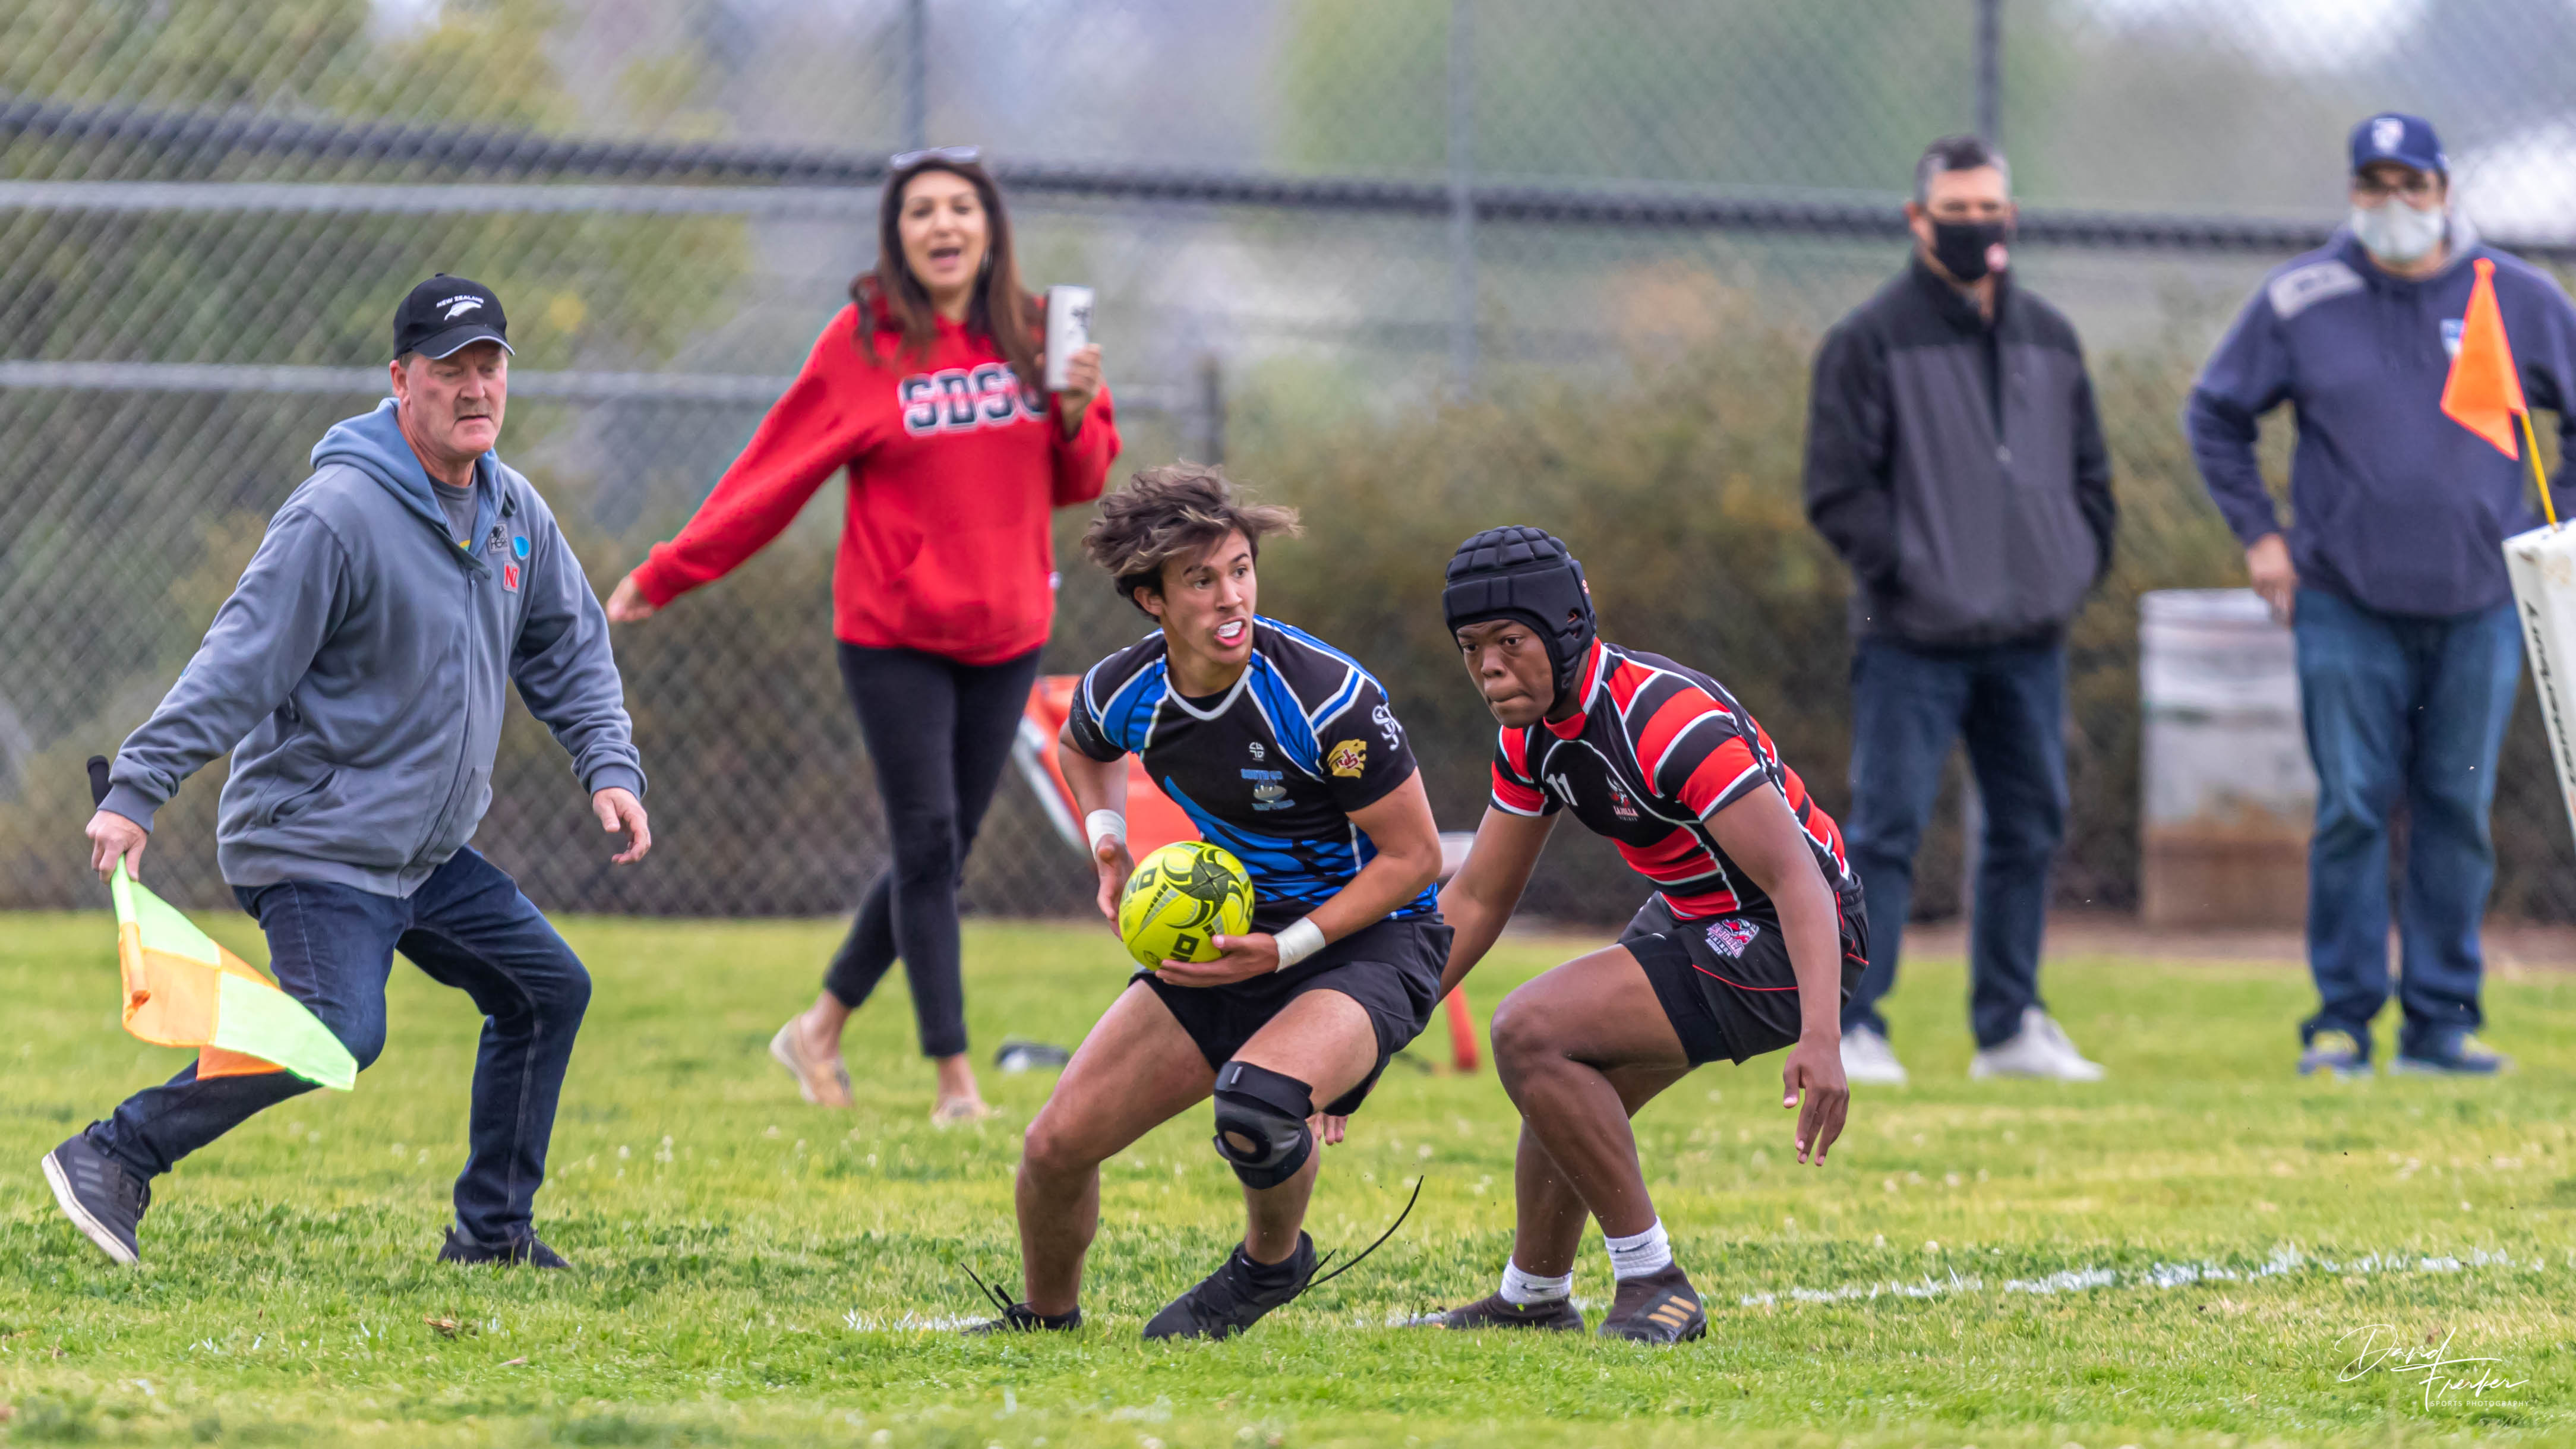 LaJollaRugby11